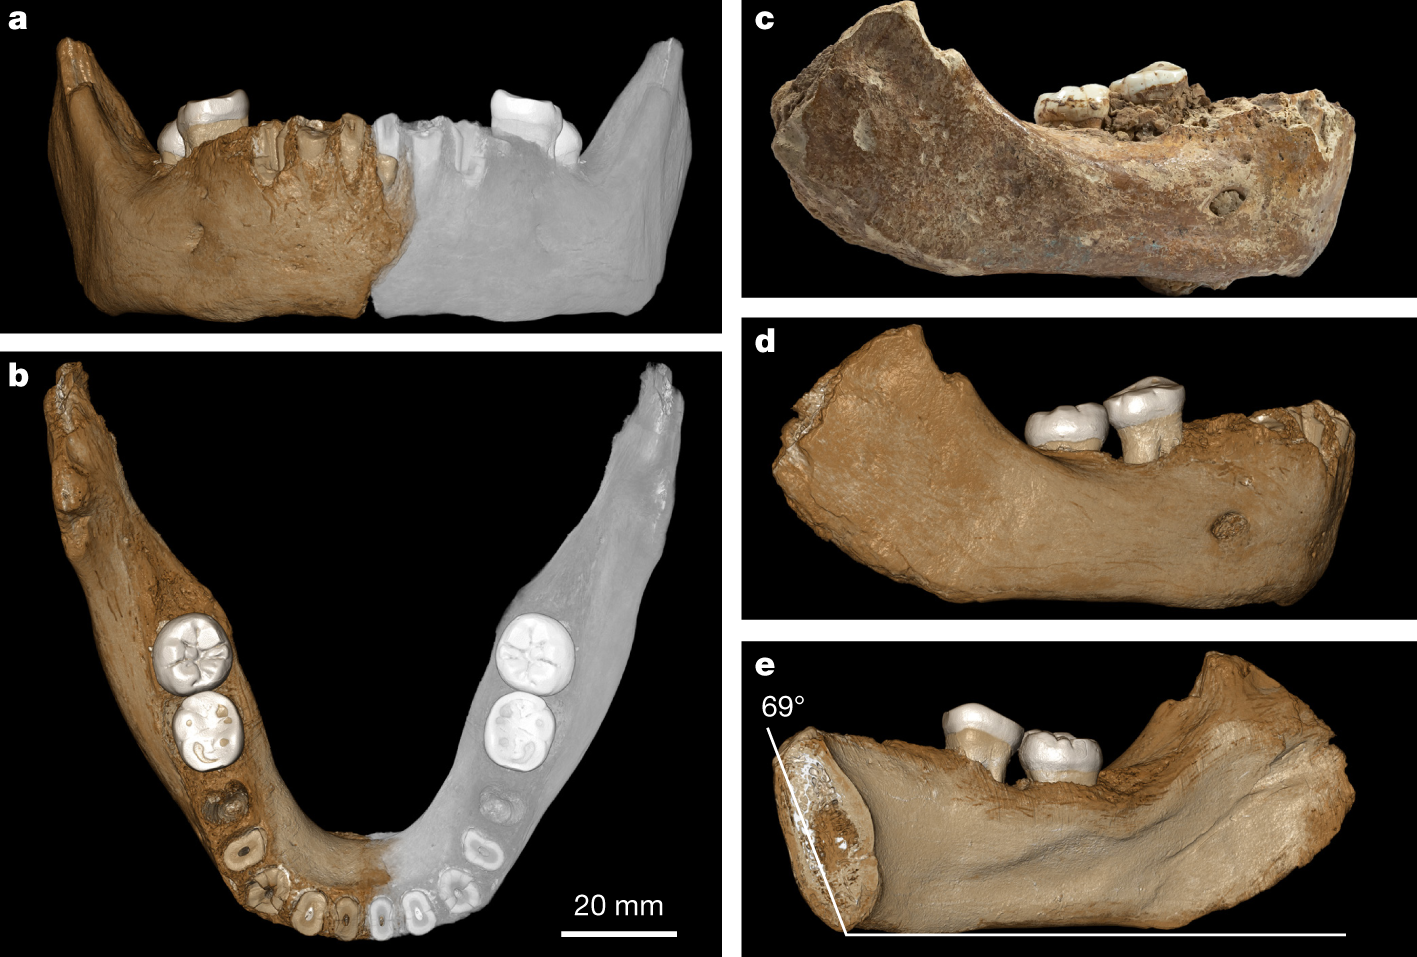 A late Middle Pleistocene Denisovan mandible from the